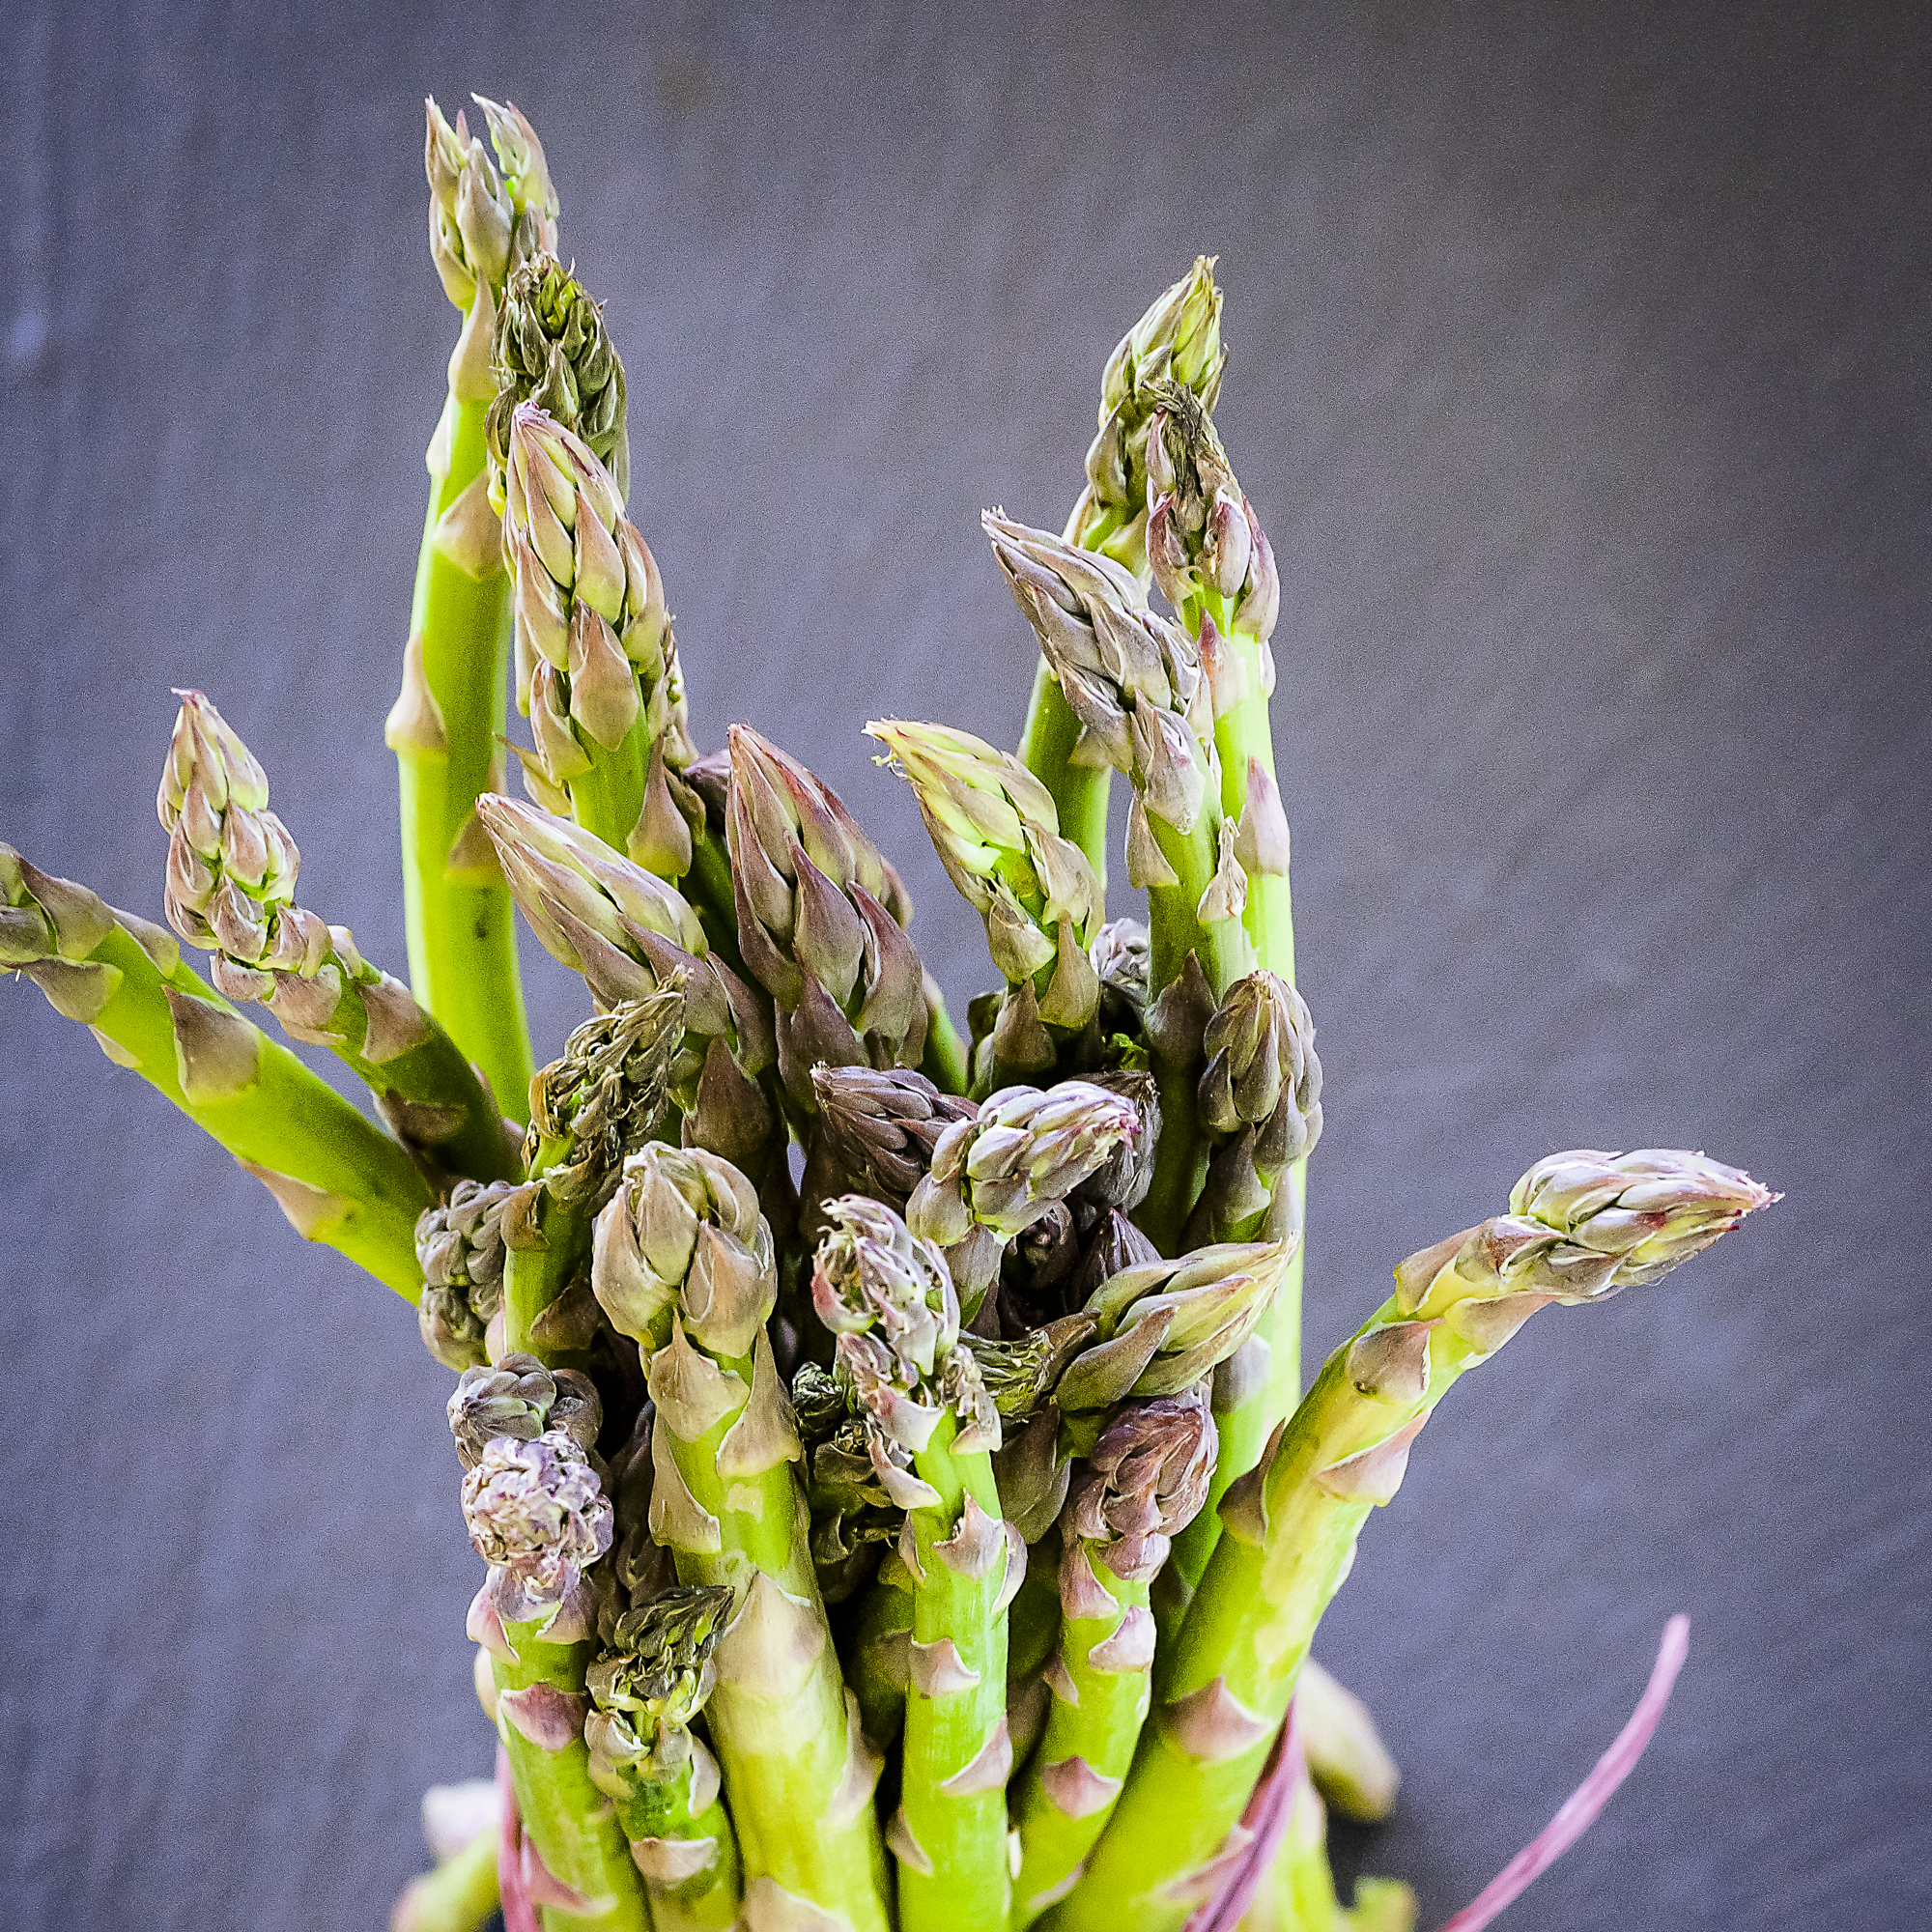 Asparagus - Caro Blackwell Photography